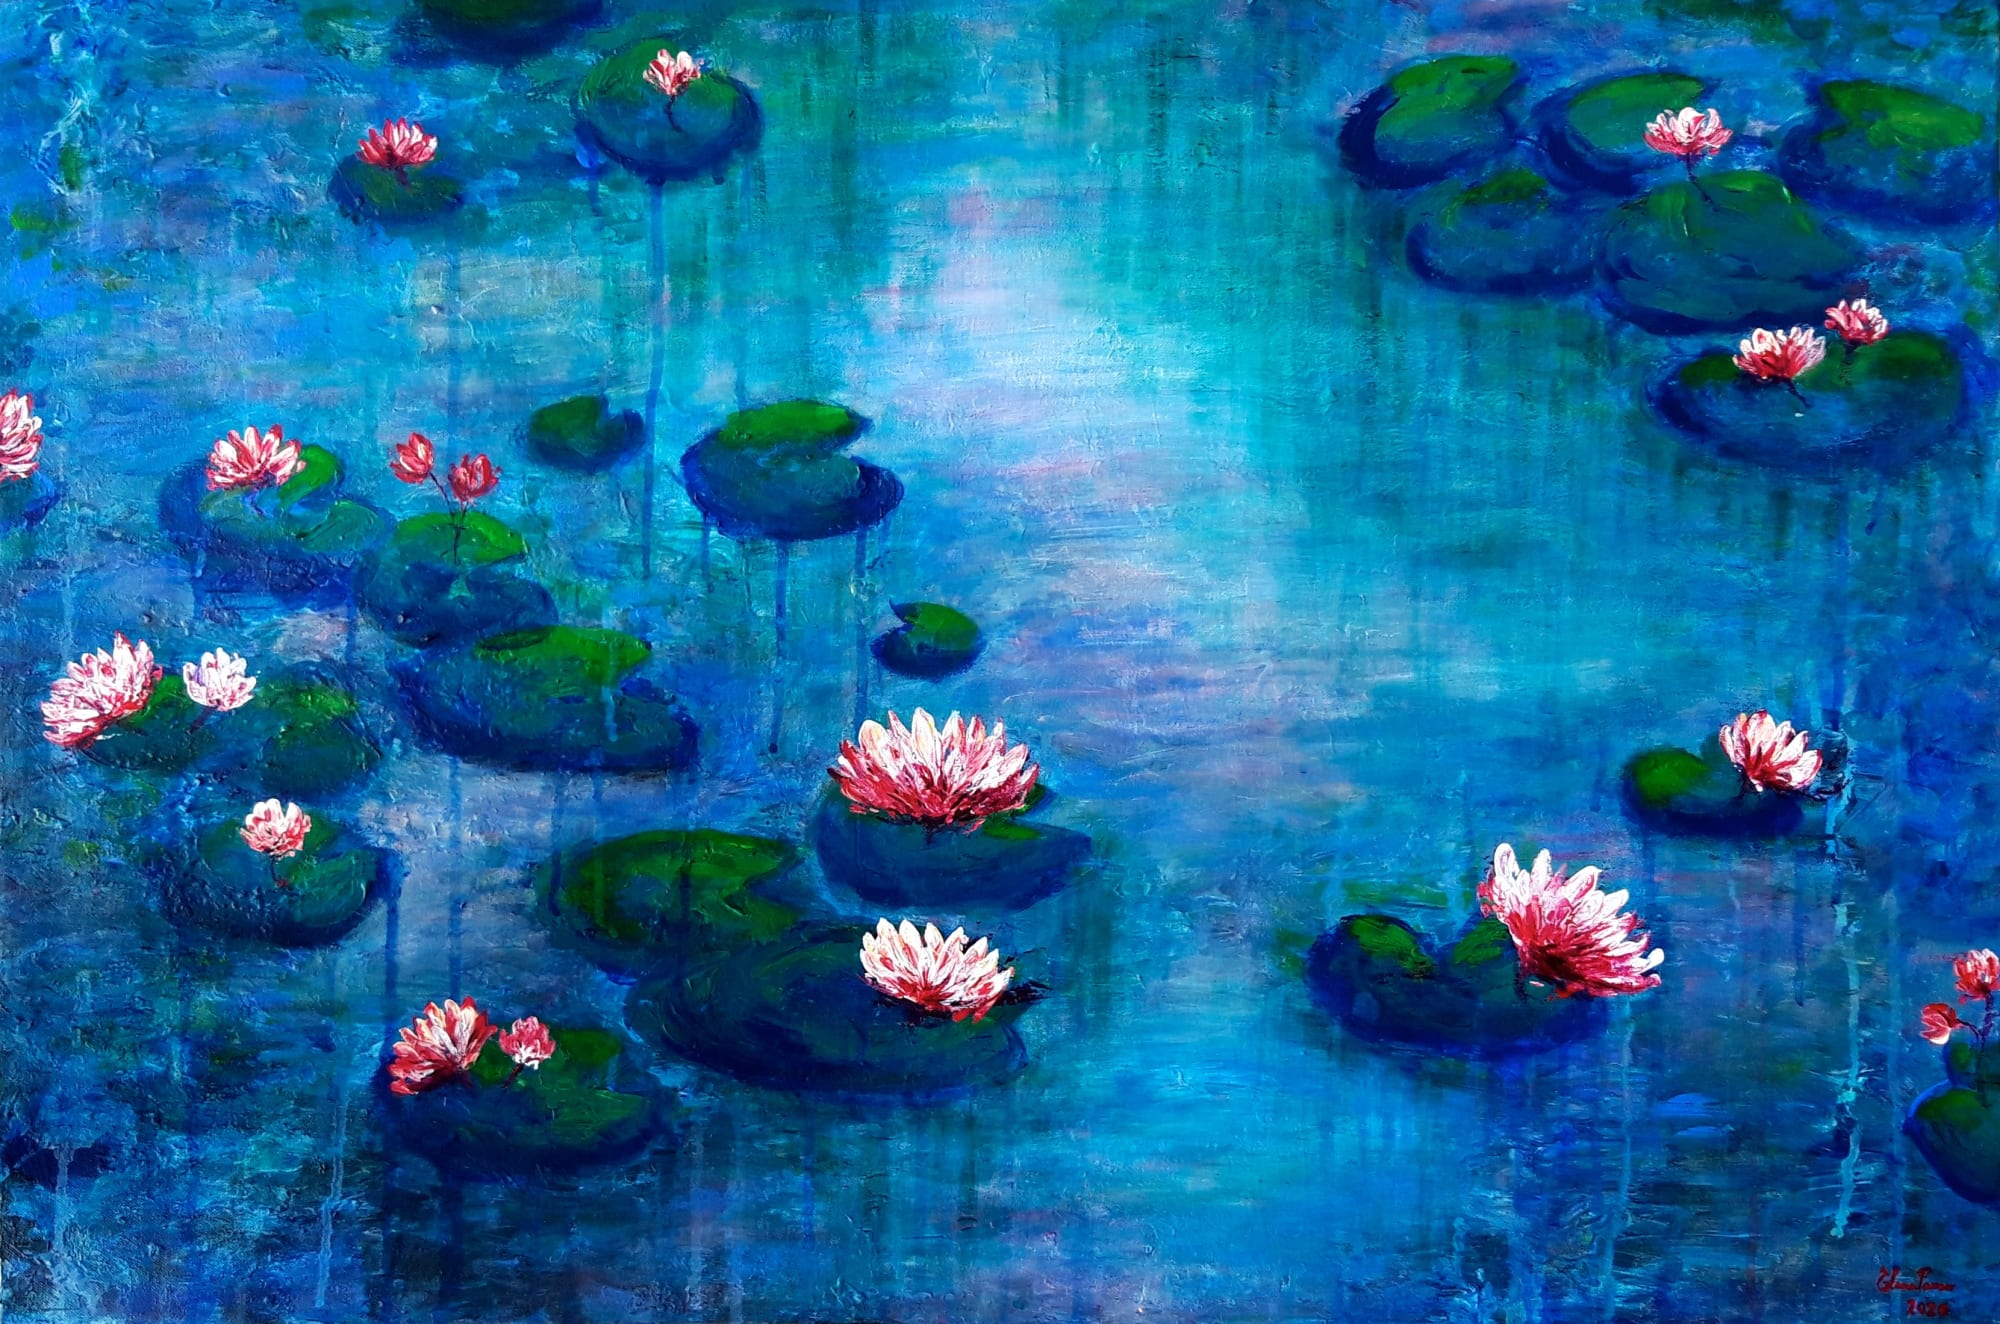 Blue water painting with pink waterlilies